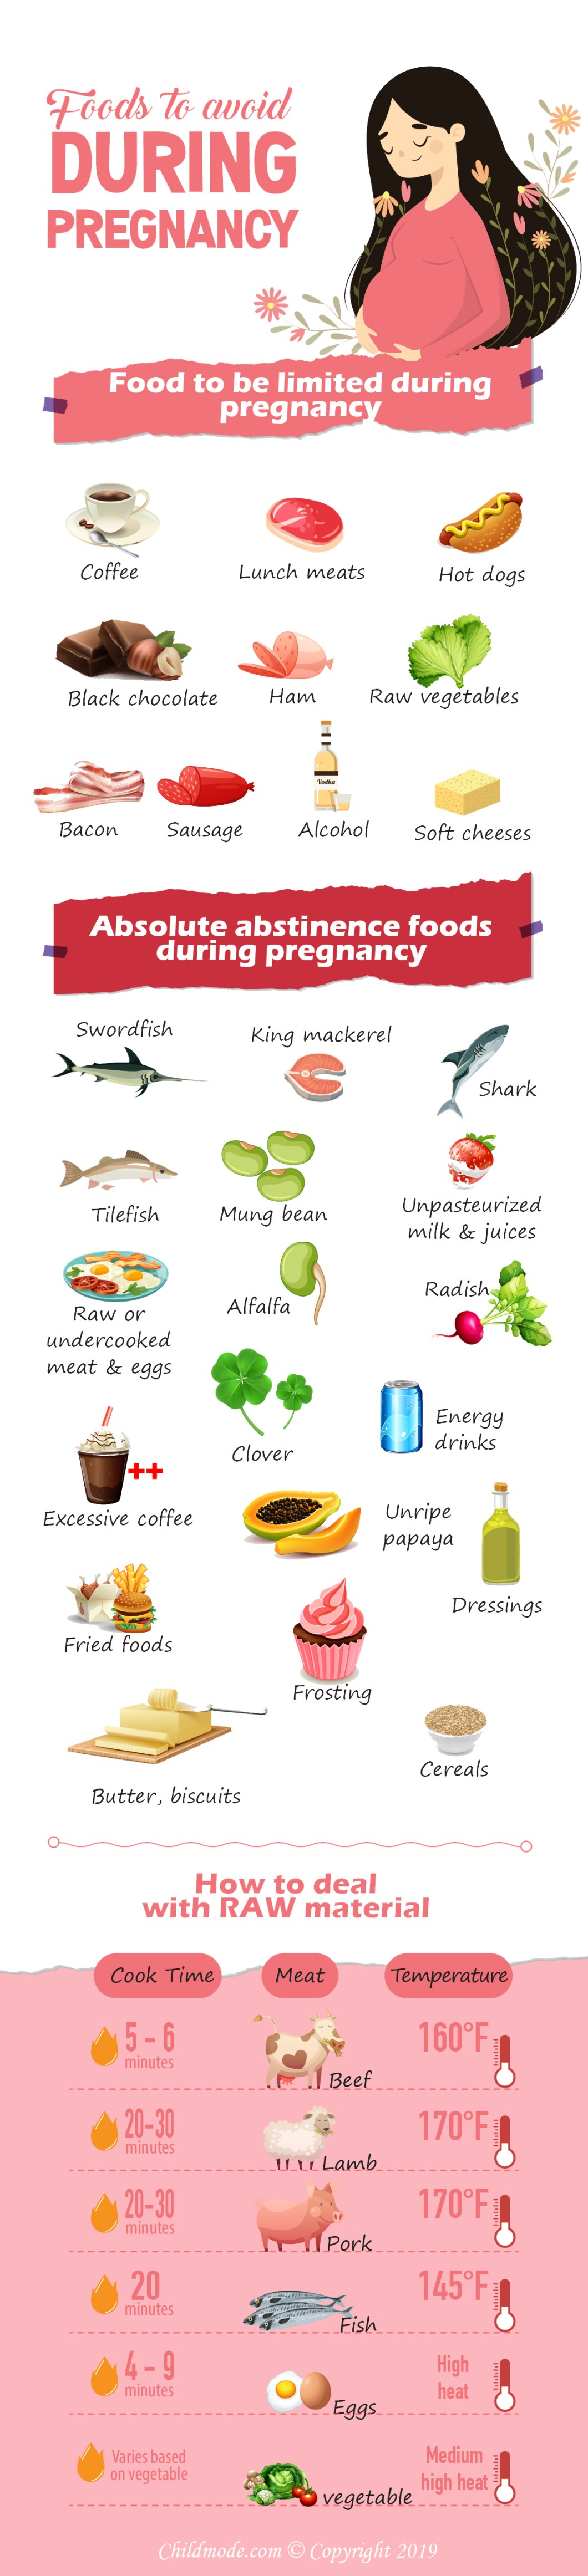 Pregnancy Foods: What to Eat / Not Eat - Infographic